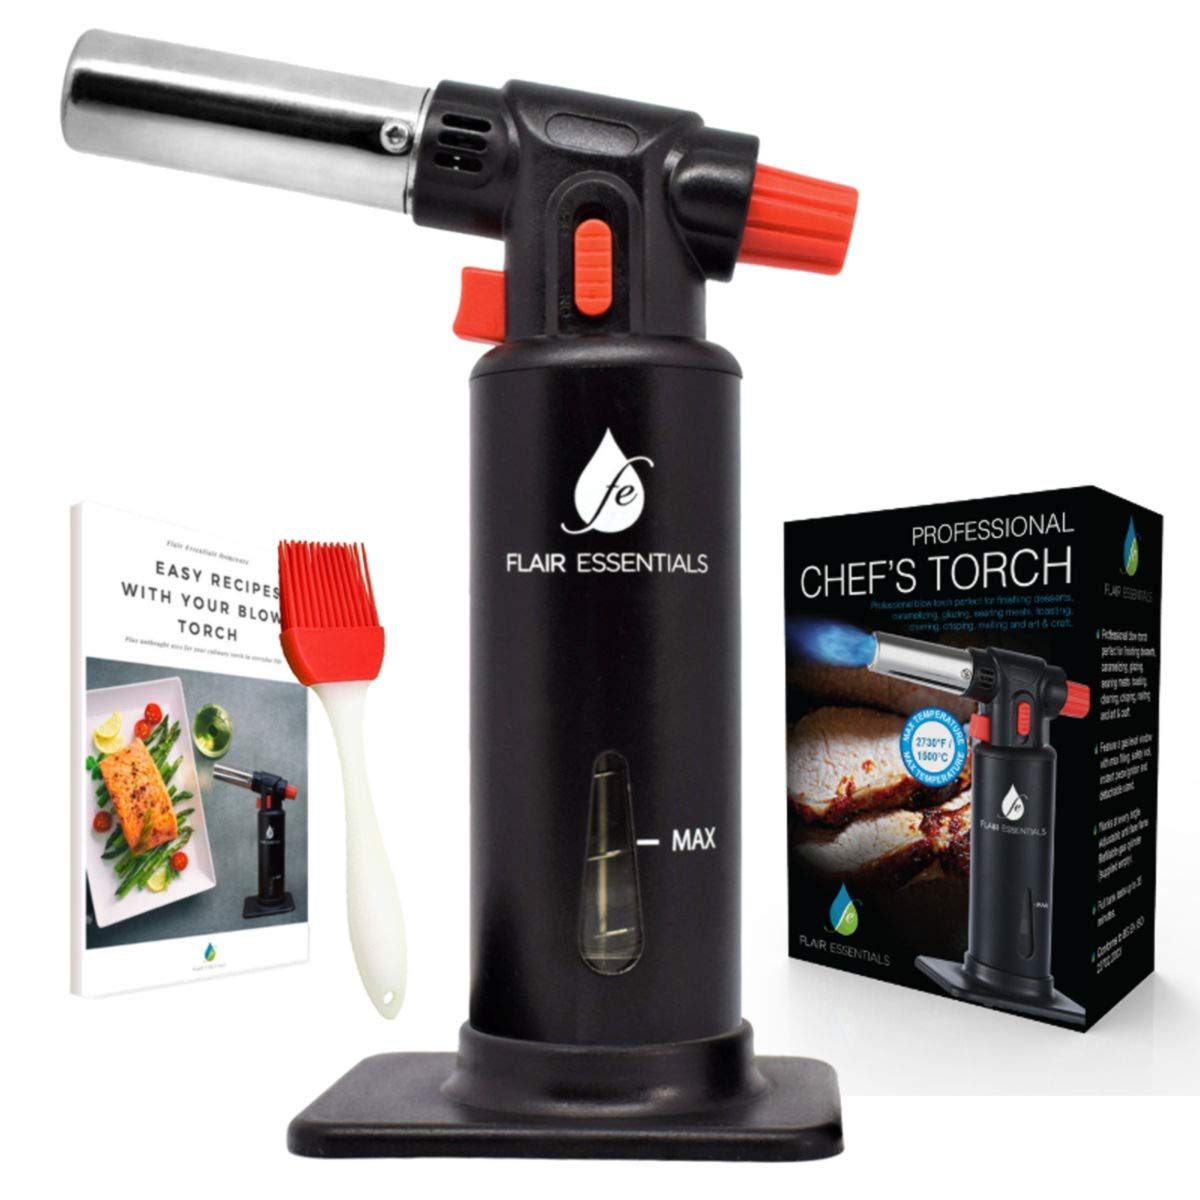 Cooking Torch Lighter. Culinary Torch, Creme Brulee Chef Torch Gourmet, Butane Kitchen Blow Torch. Adjustable Flame Safety Lock, Gas Window Gauge with Basting Brush, 23 Recipe eBook